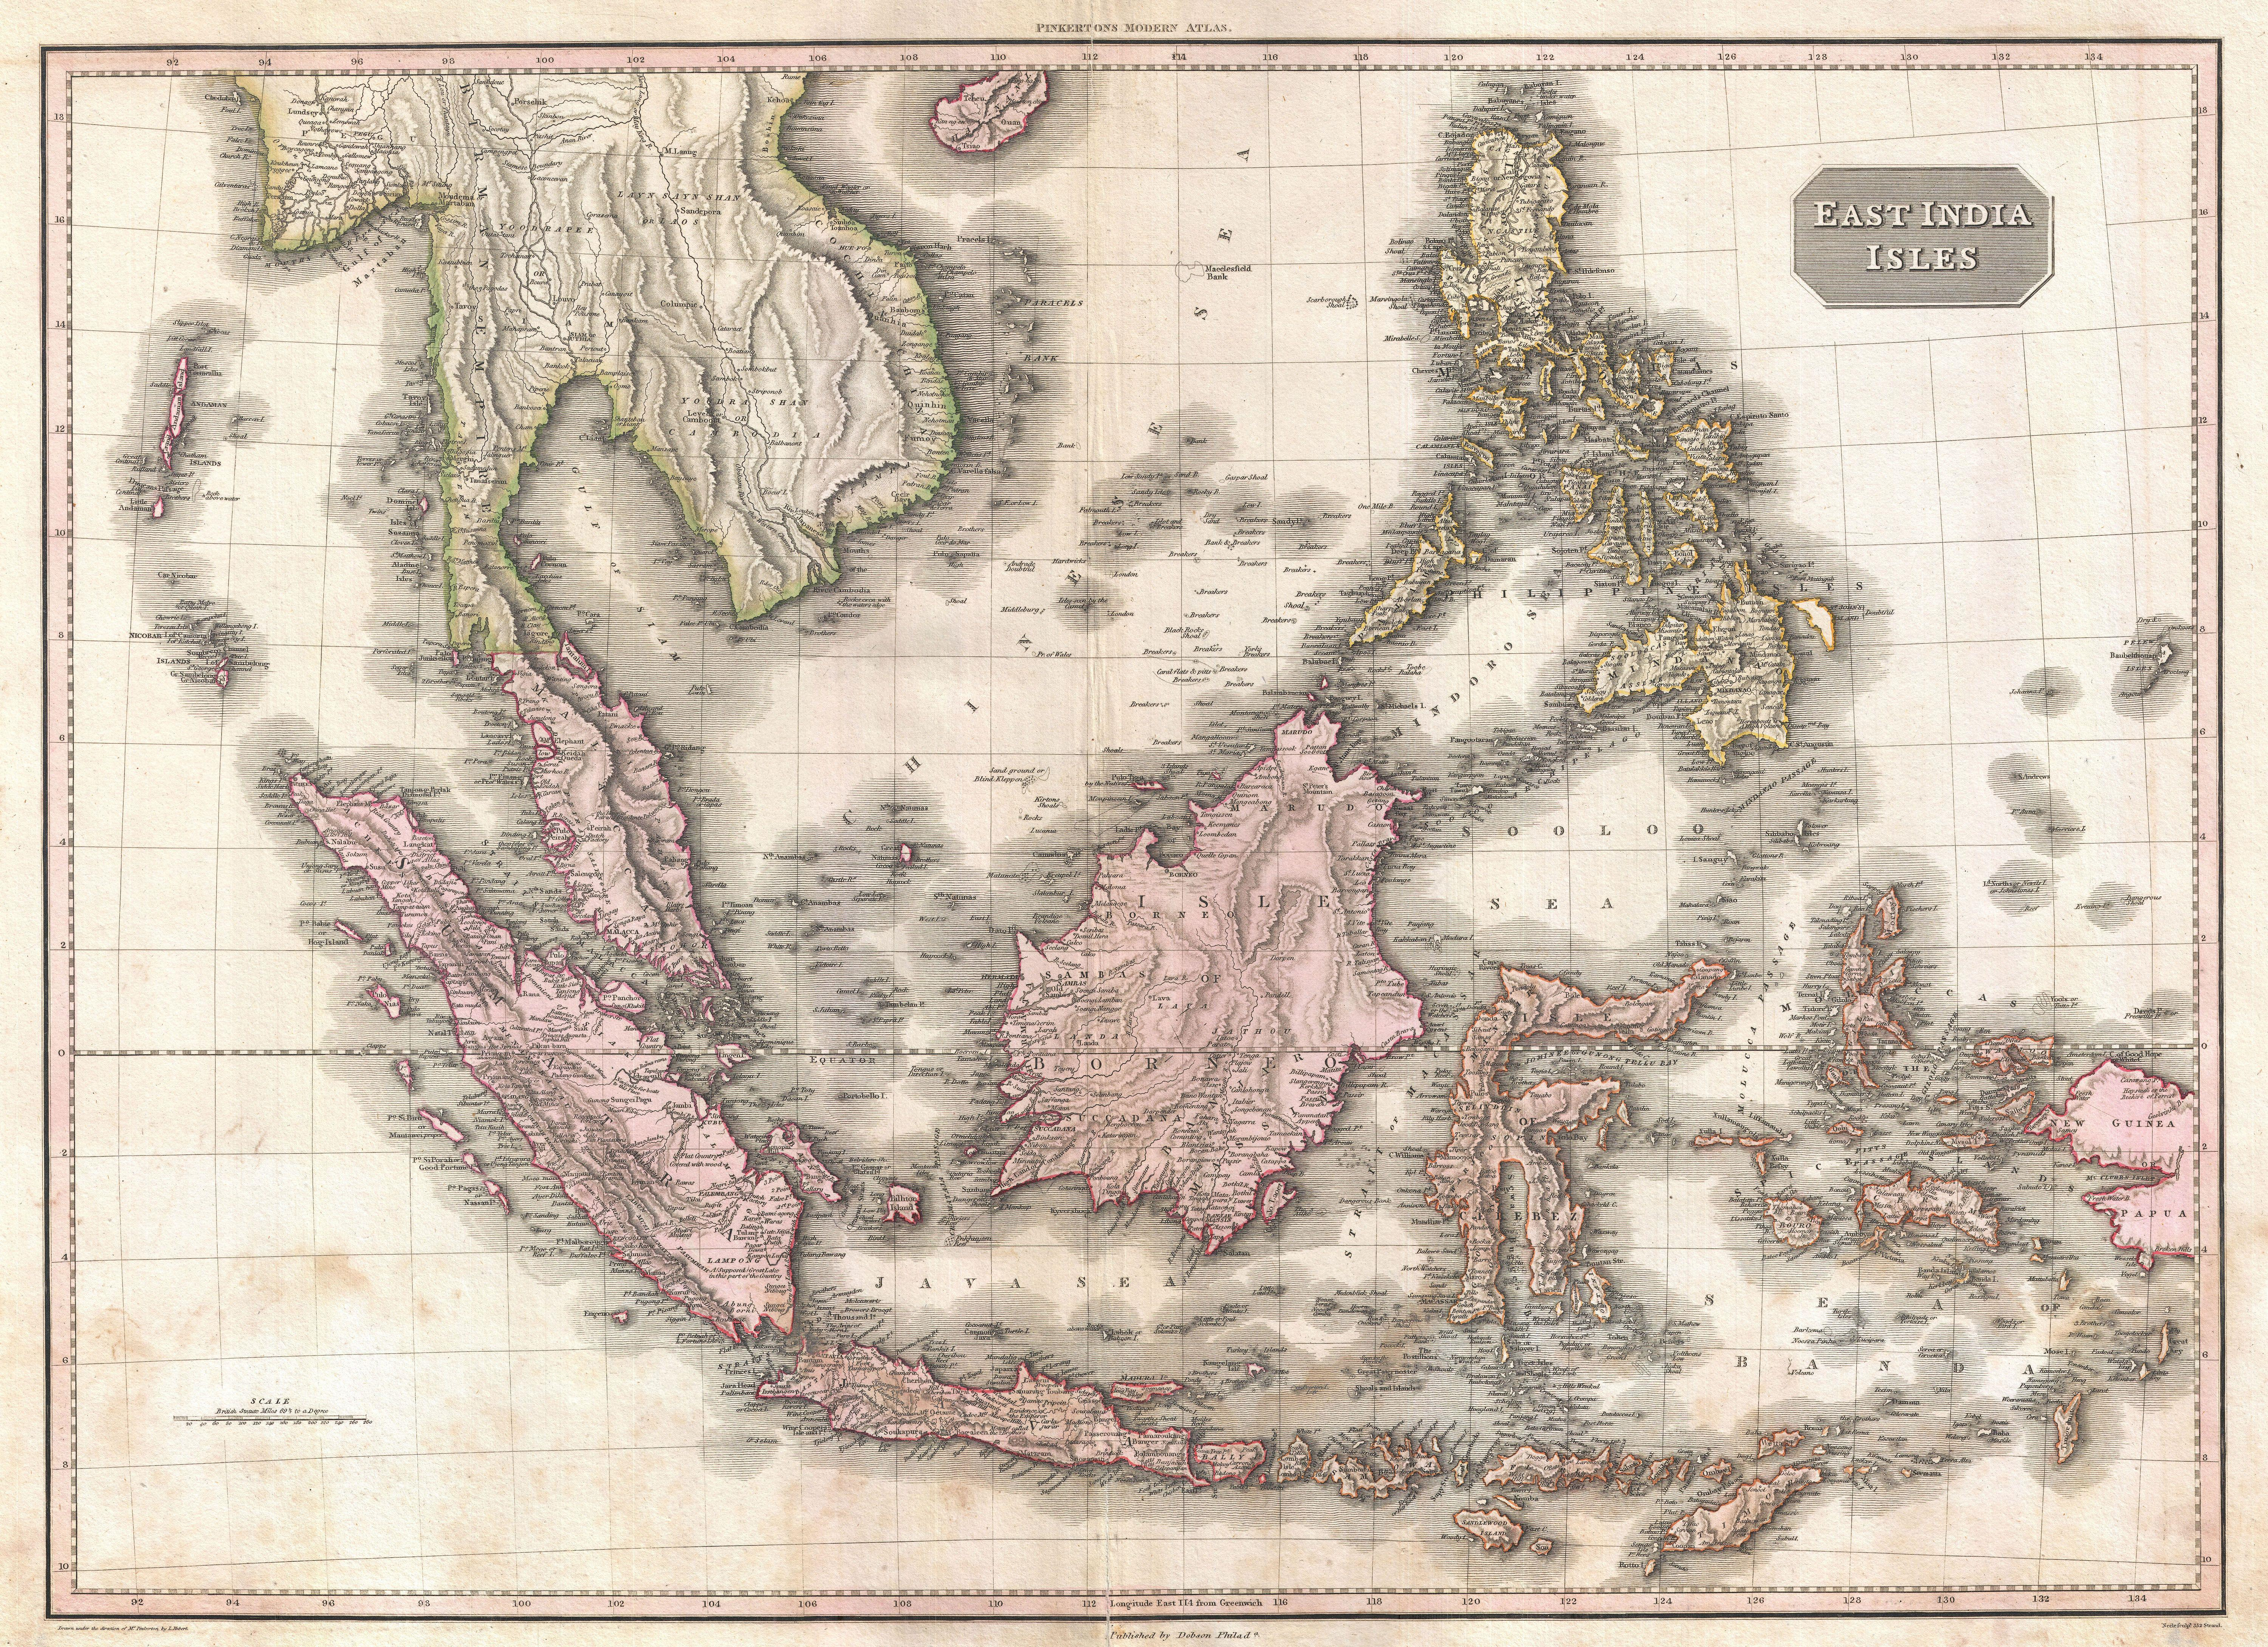 http://upload.wikimedia.org/wikipedia/commons/4/42/1818_Pinkerton_Map_of_the_East_Indies_and_Southeast_Asia_(Singapore,_Borneo,_Java,_Sumatra,_Thailand_-_Geographicus_-_EastIndiaIslands-pinkerton-1818.jpg